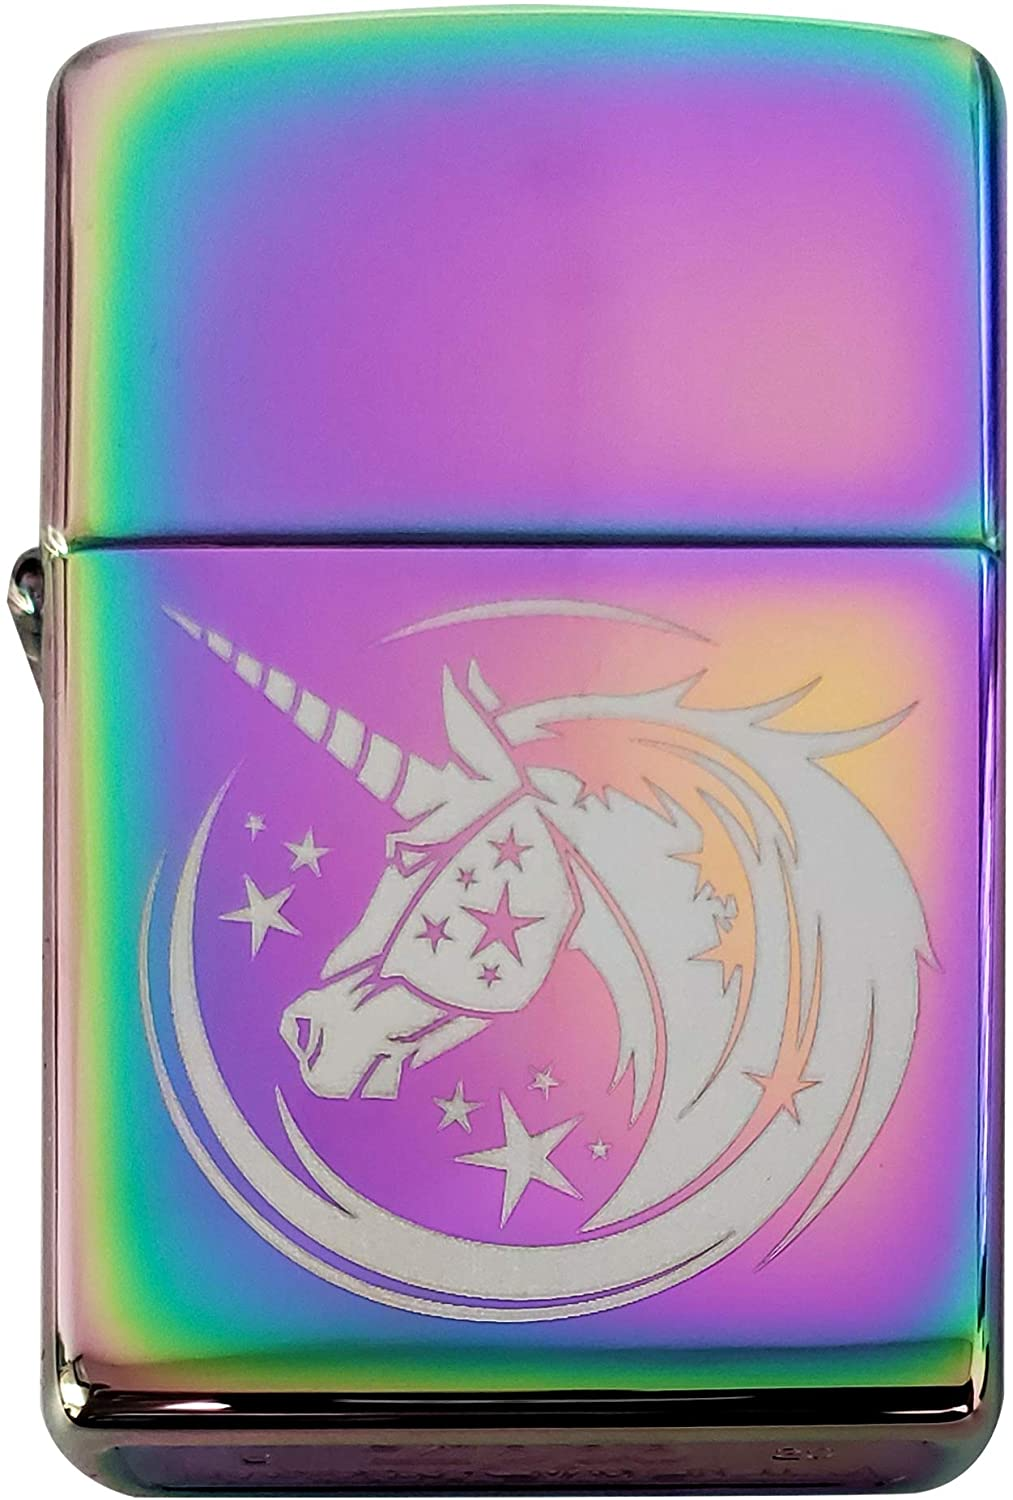 Zippo Custom Lighter - Starry Majestic Unicorn Design - Regular Spectrum - Gifts for Him, for Her, for Husband, for Wife, for Them, for Men, for Women